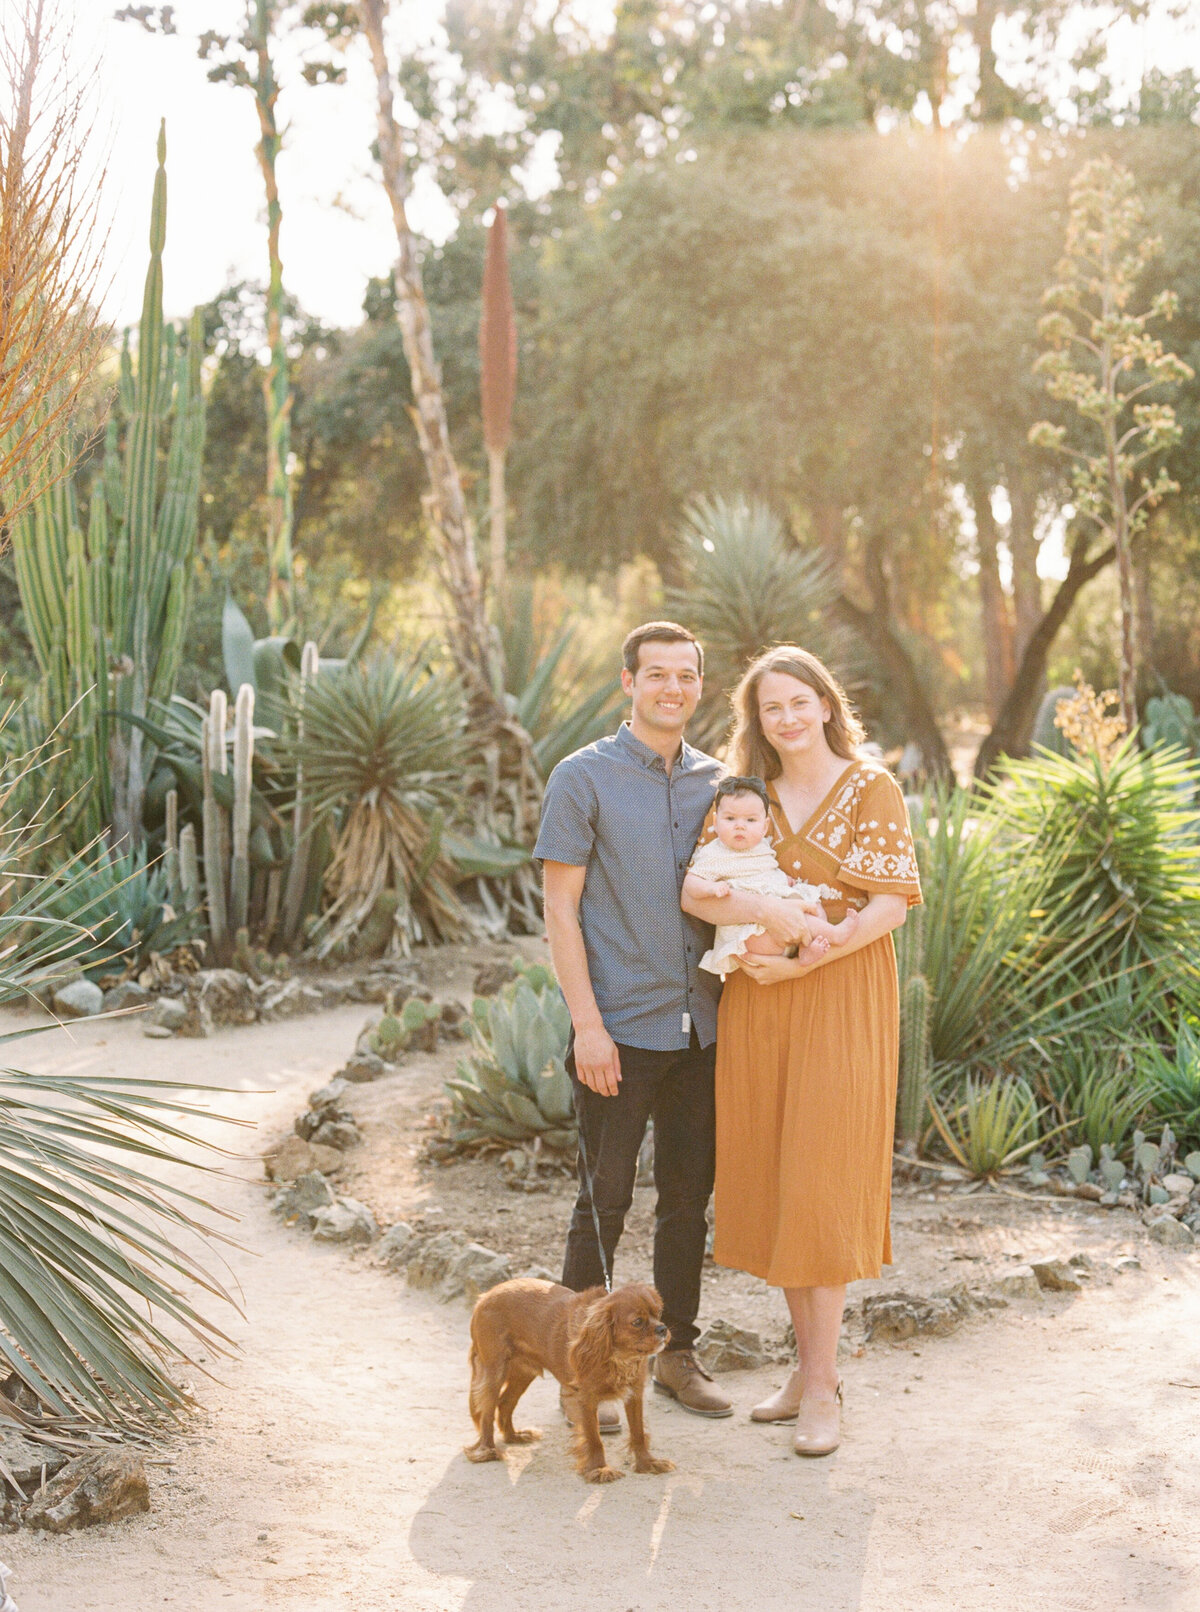 Olivia Marshall Photography- Cactus Desert Garden Family Photos-2